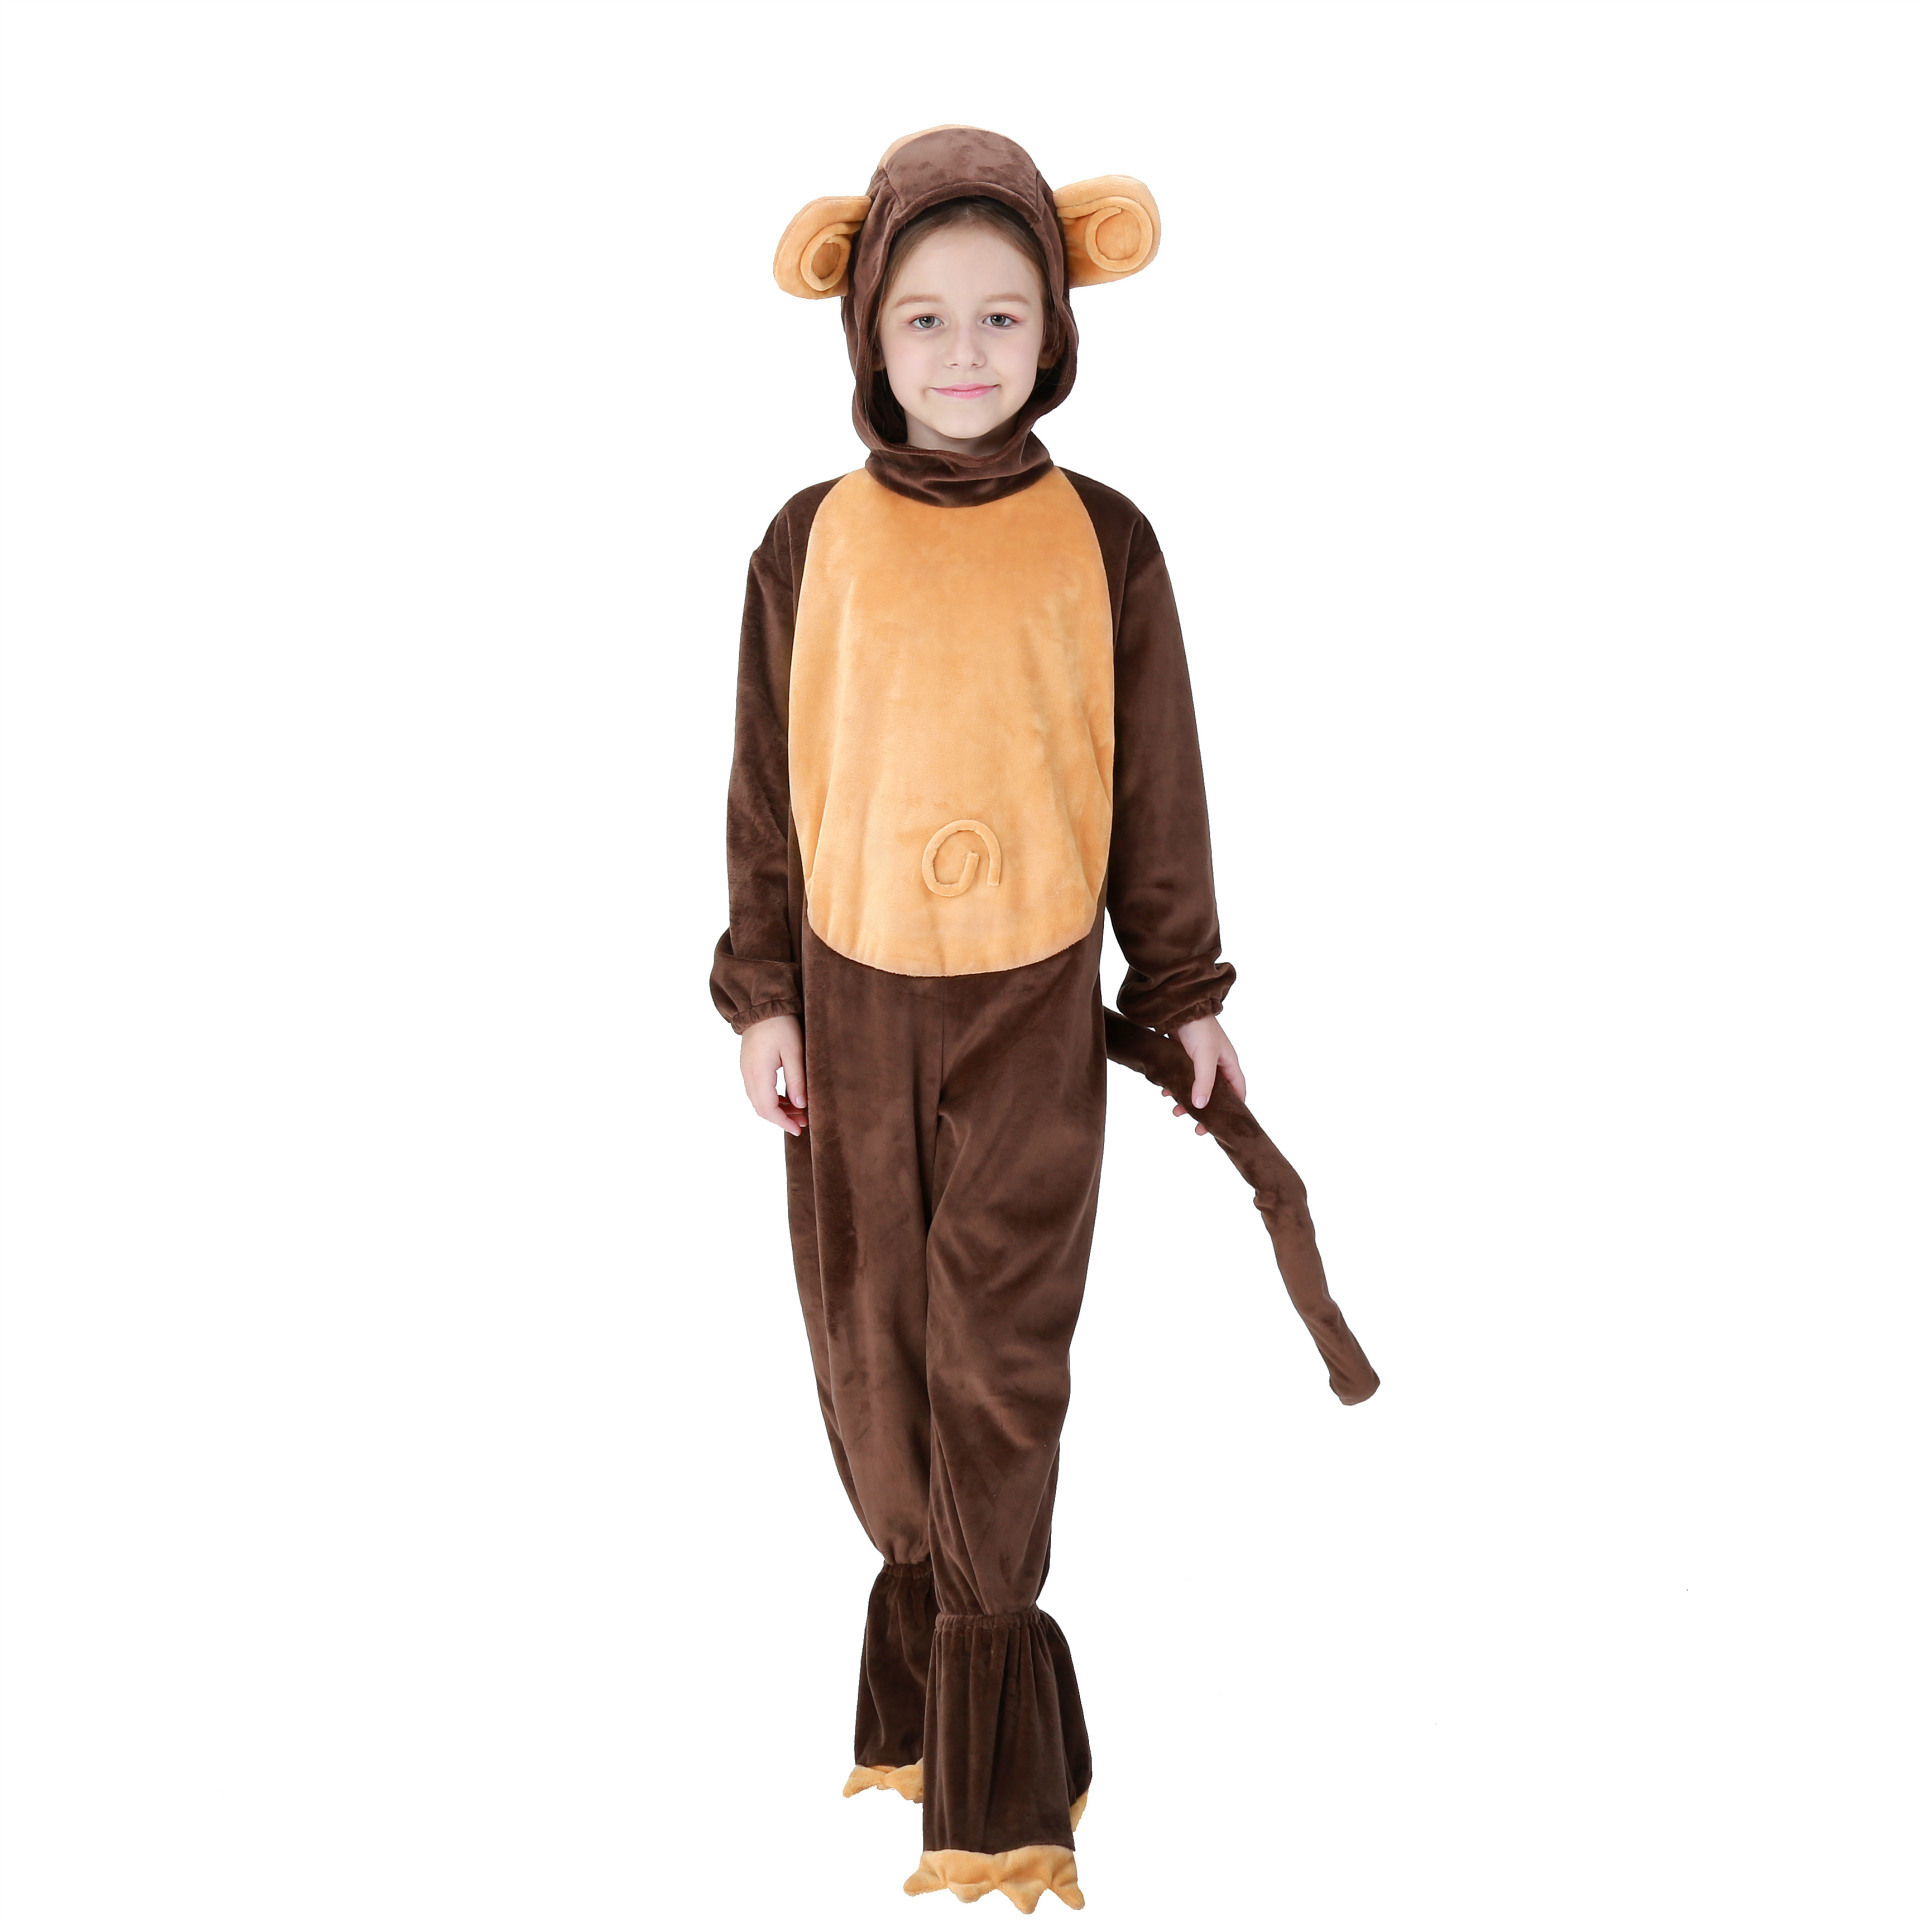 Wool Fabric Girls Monkey Brown Cosplay Clothing Halloween Kids Animal Performance Comfortable Costume